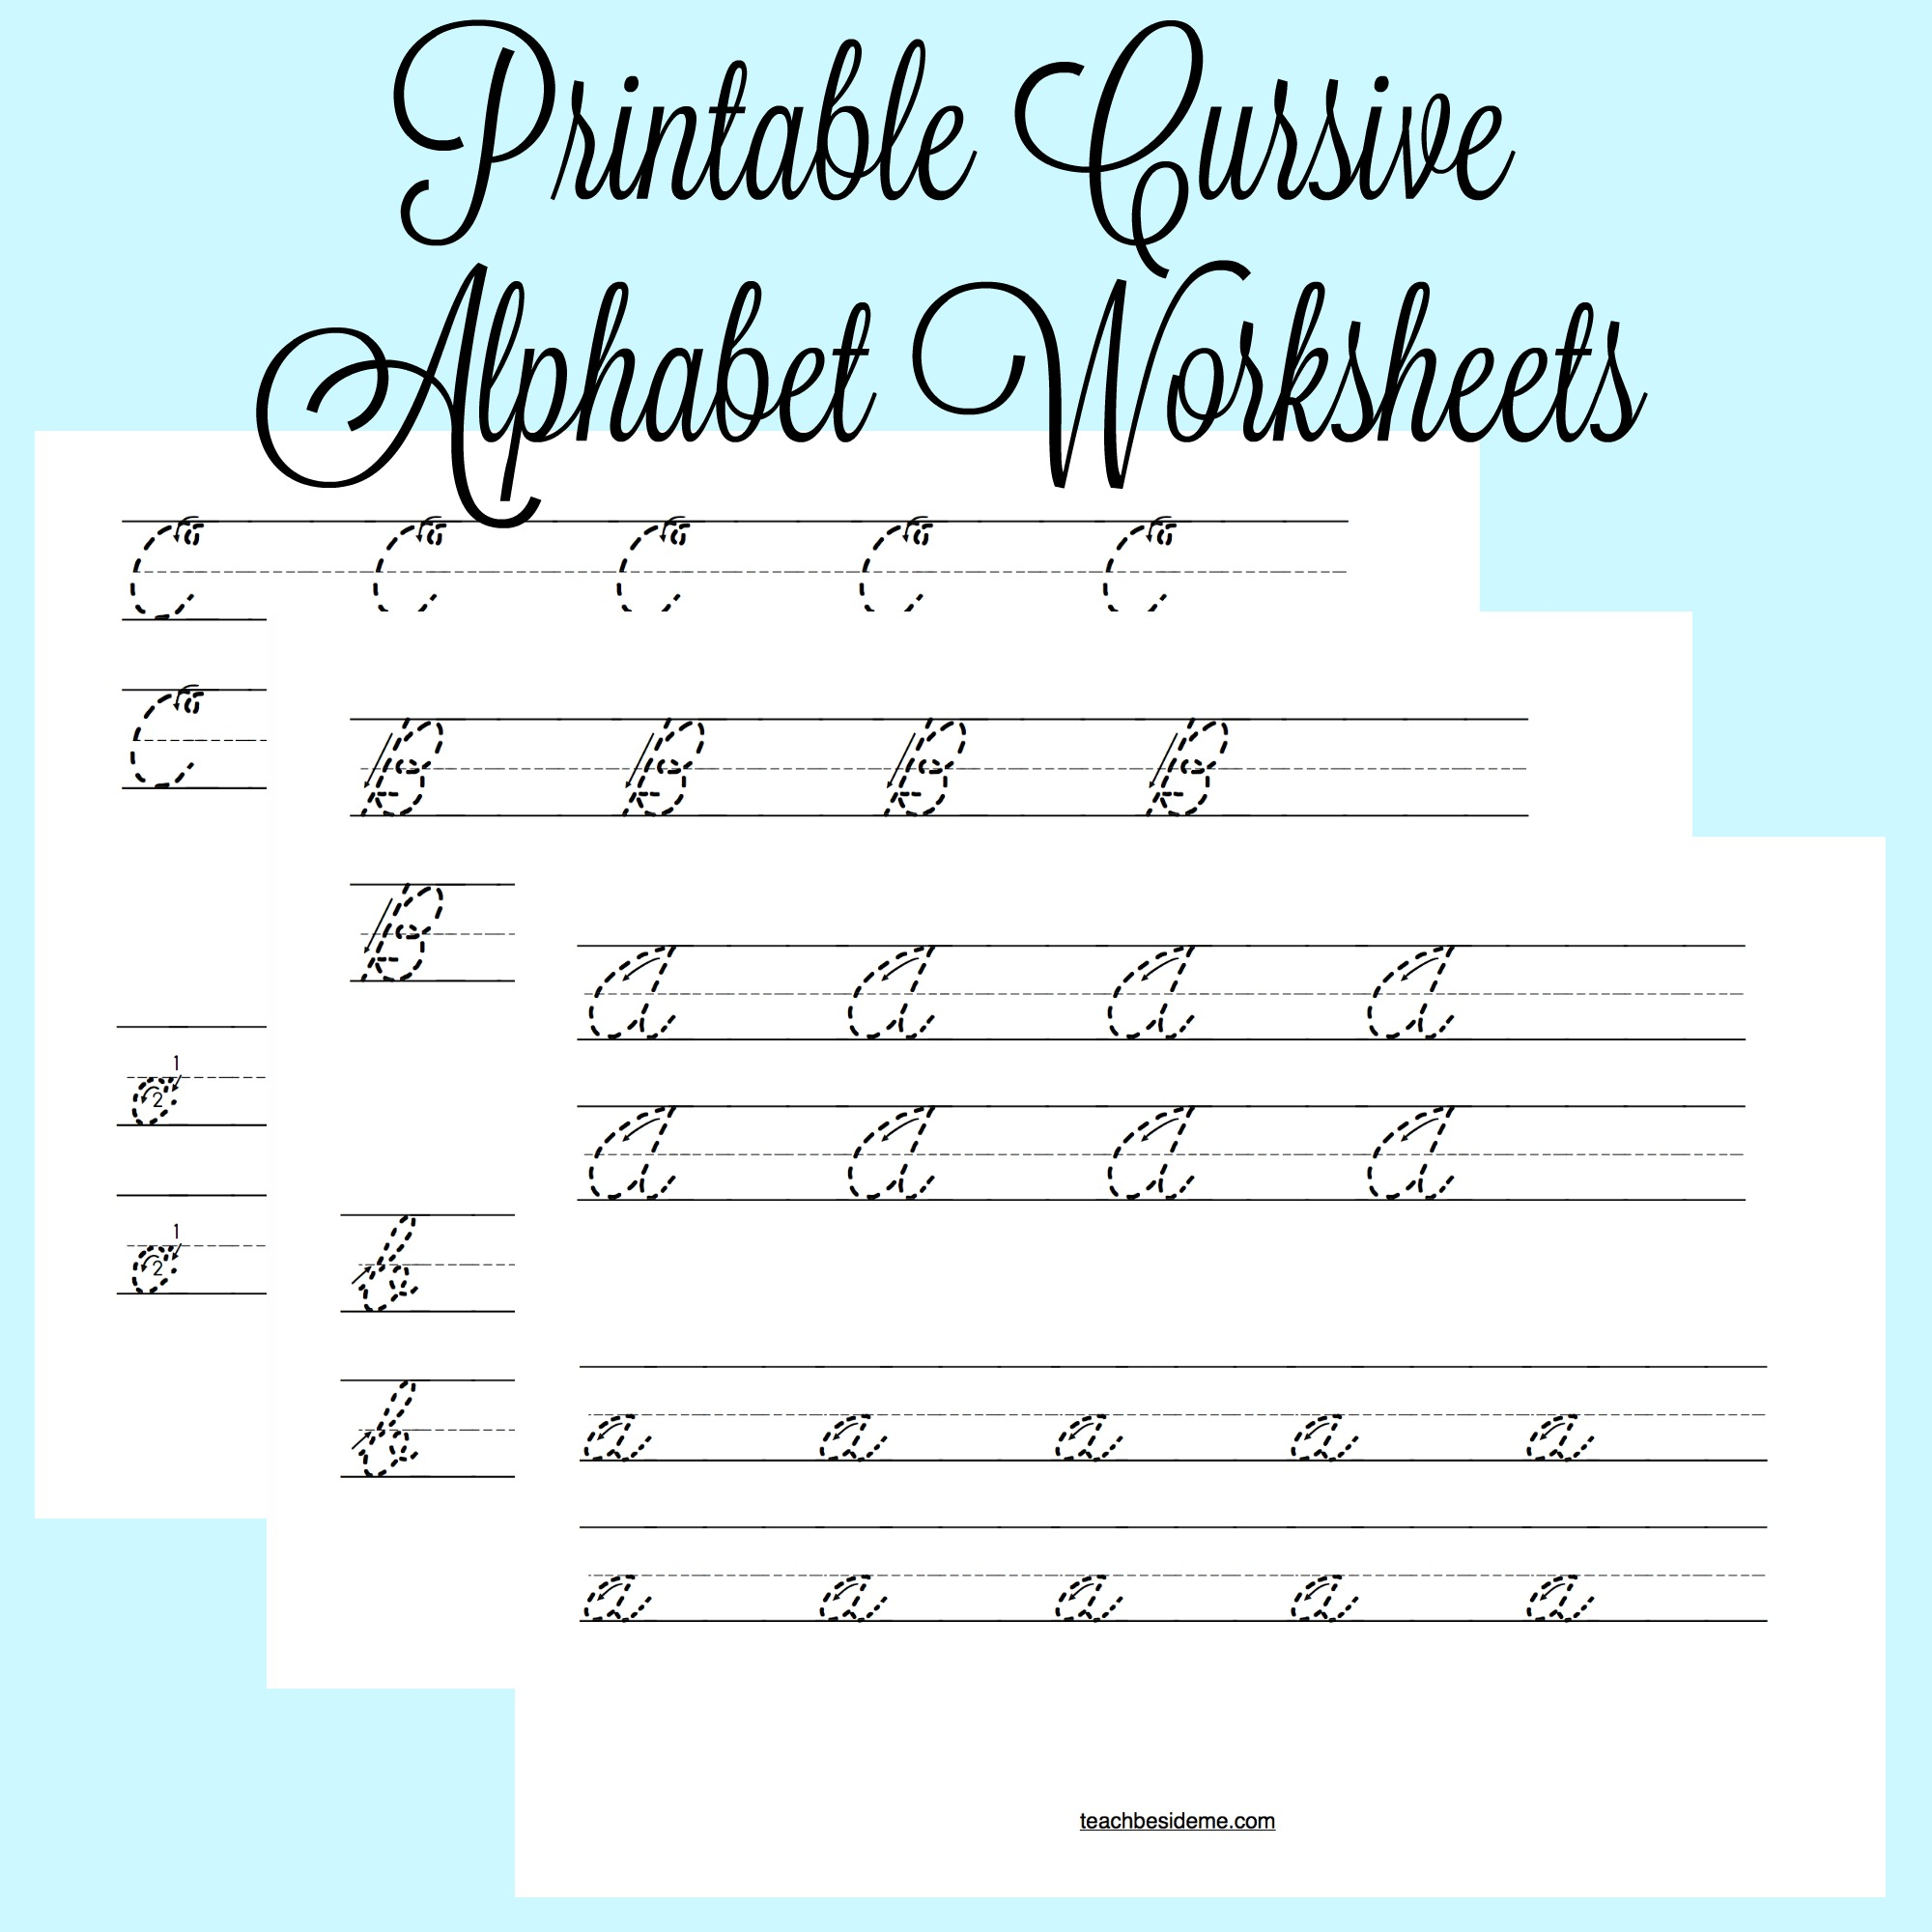 Worksheets Cursive Worksheets Printable printable cursive alphabet worksheets teach beside me worksheets